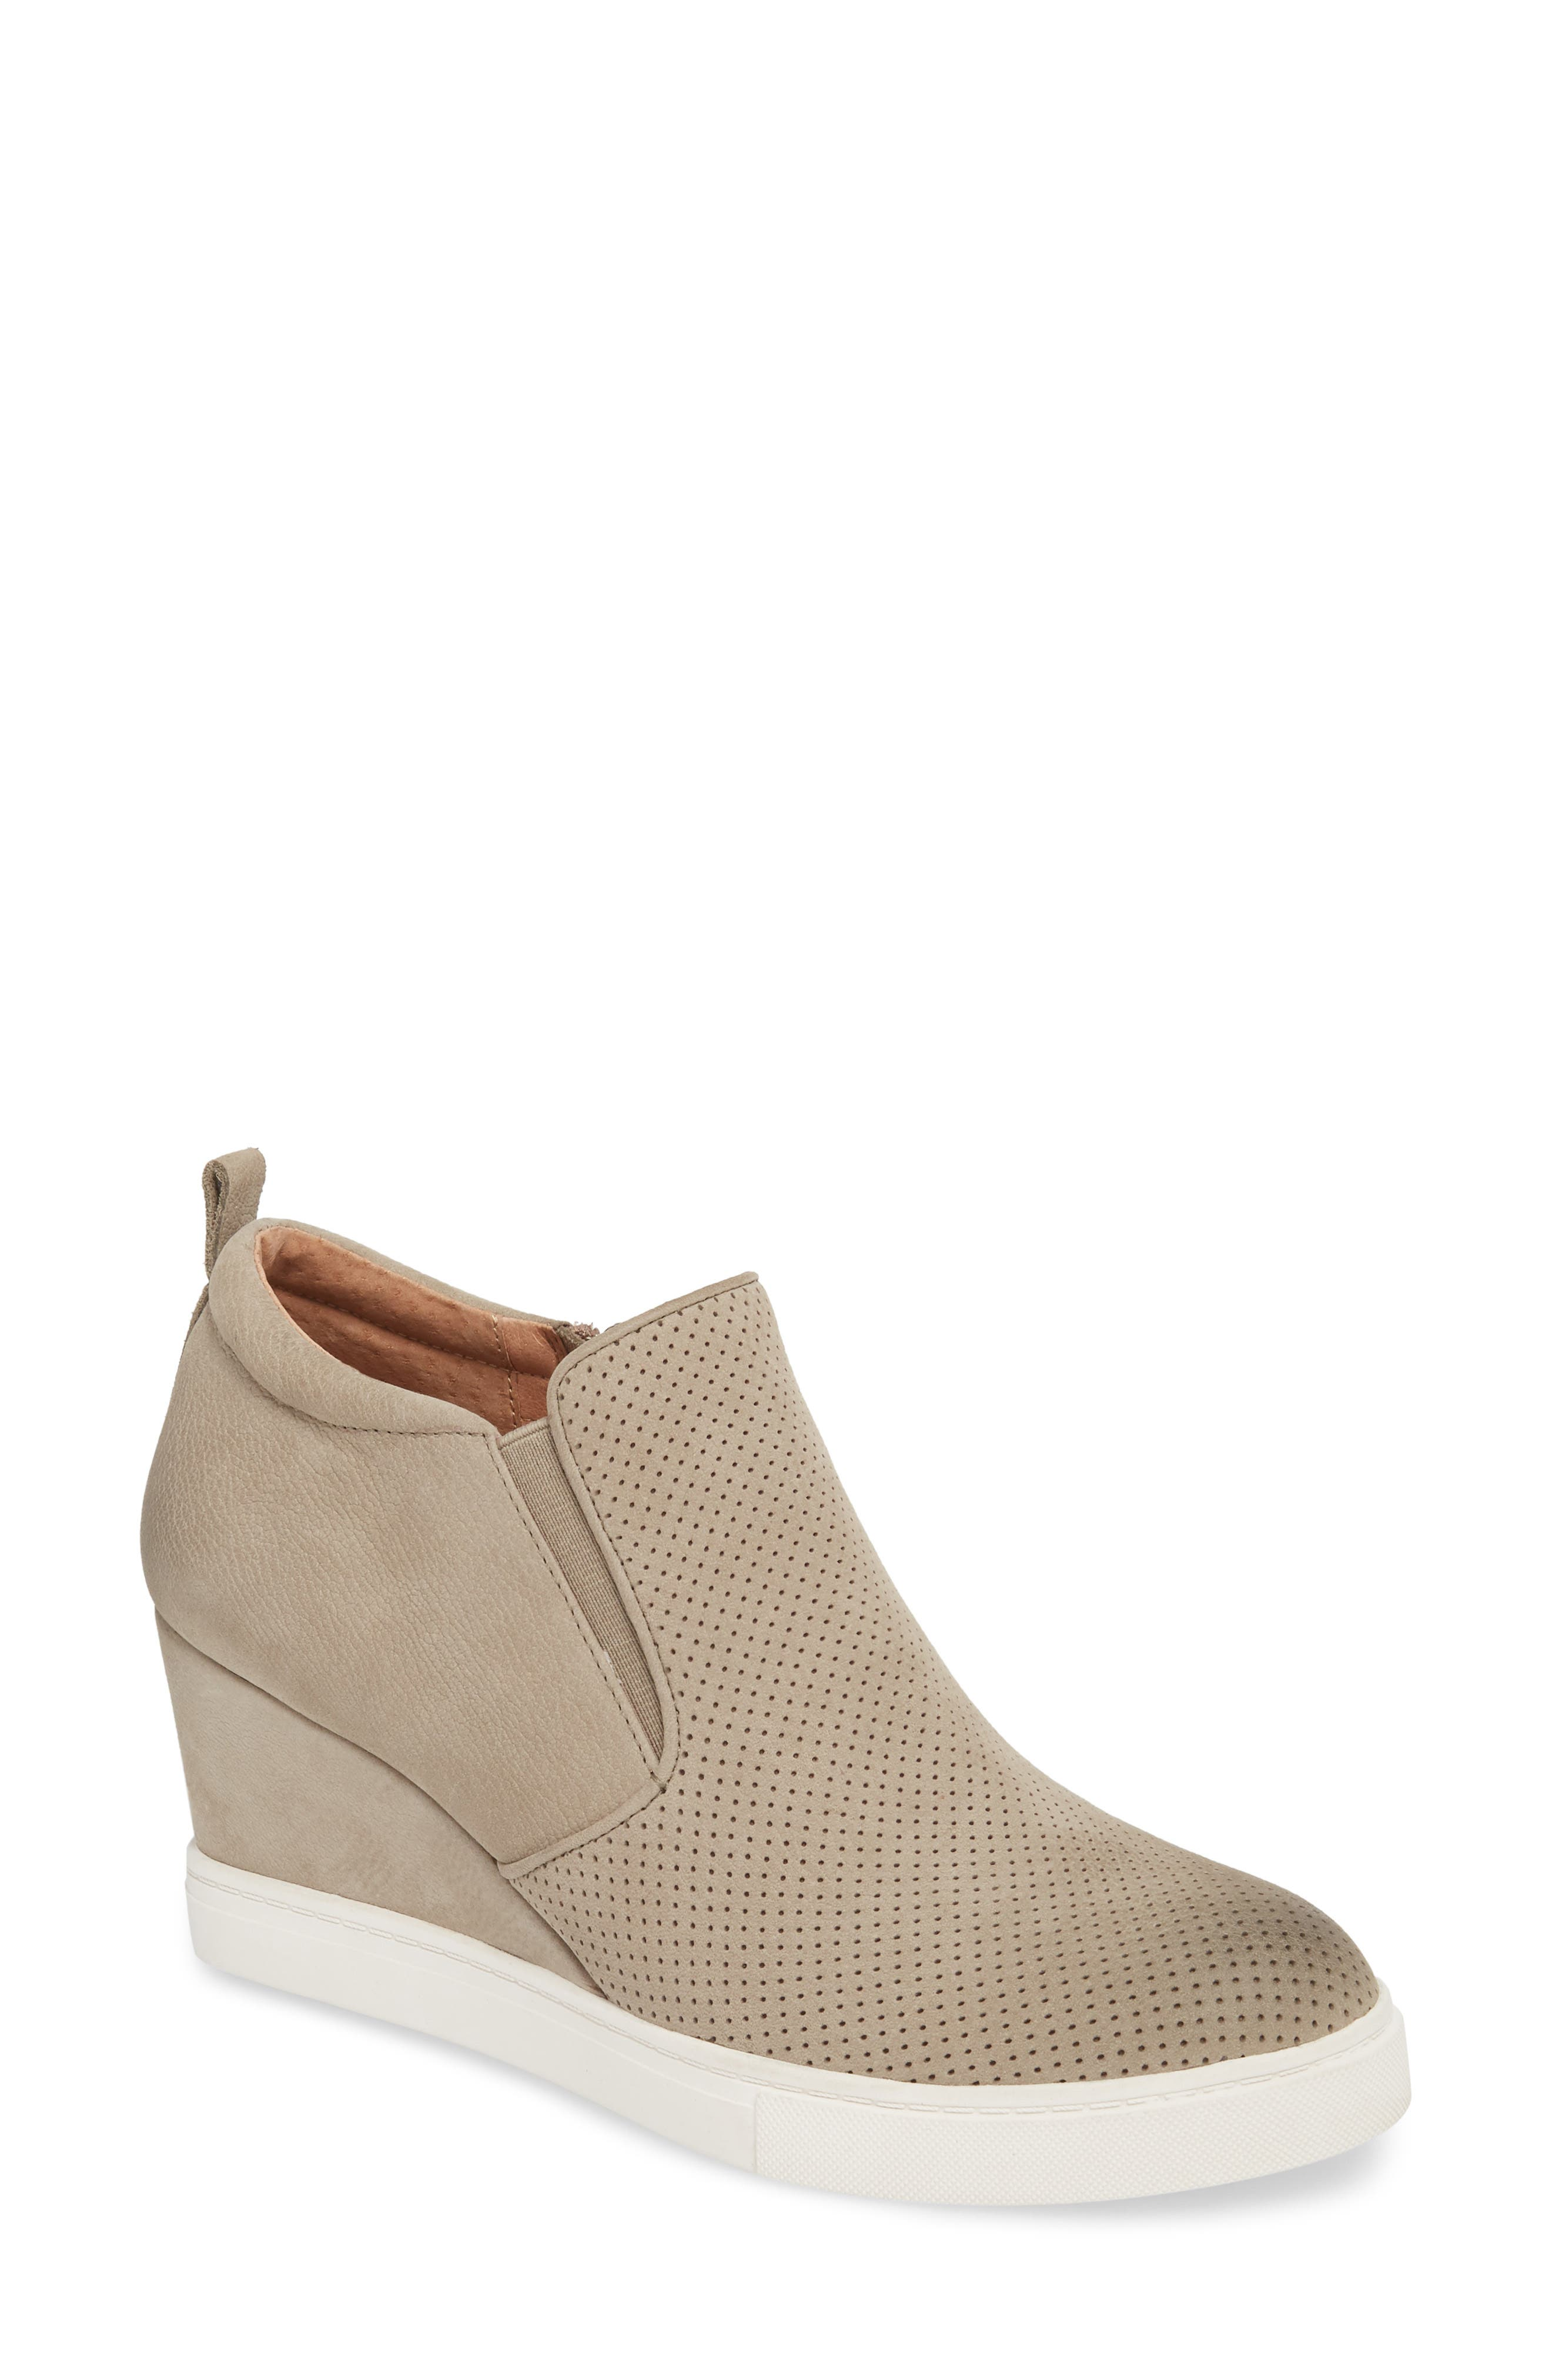 Aiden Wedge Sneaker,                             Main thumbnail 1, color,                             260